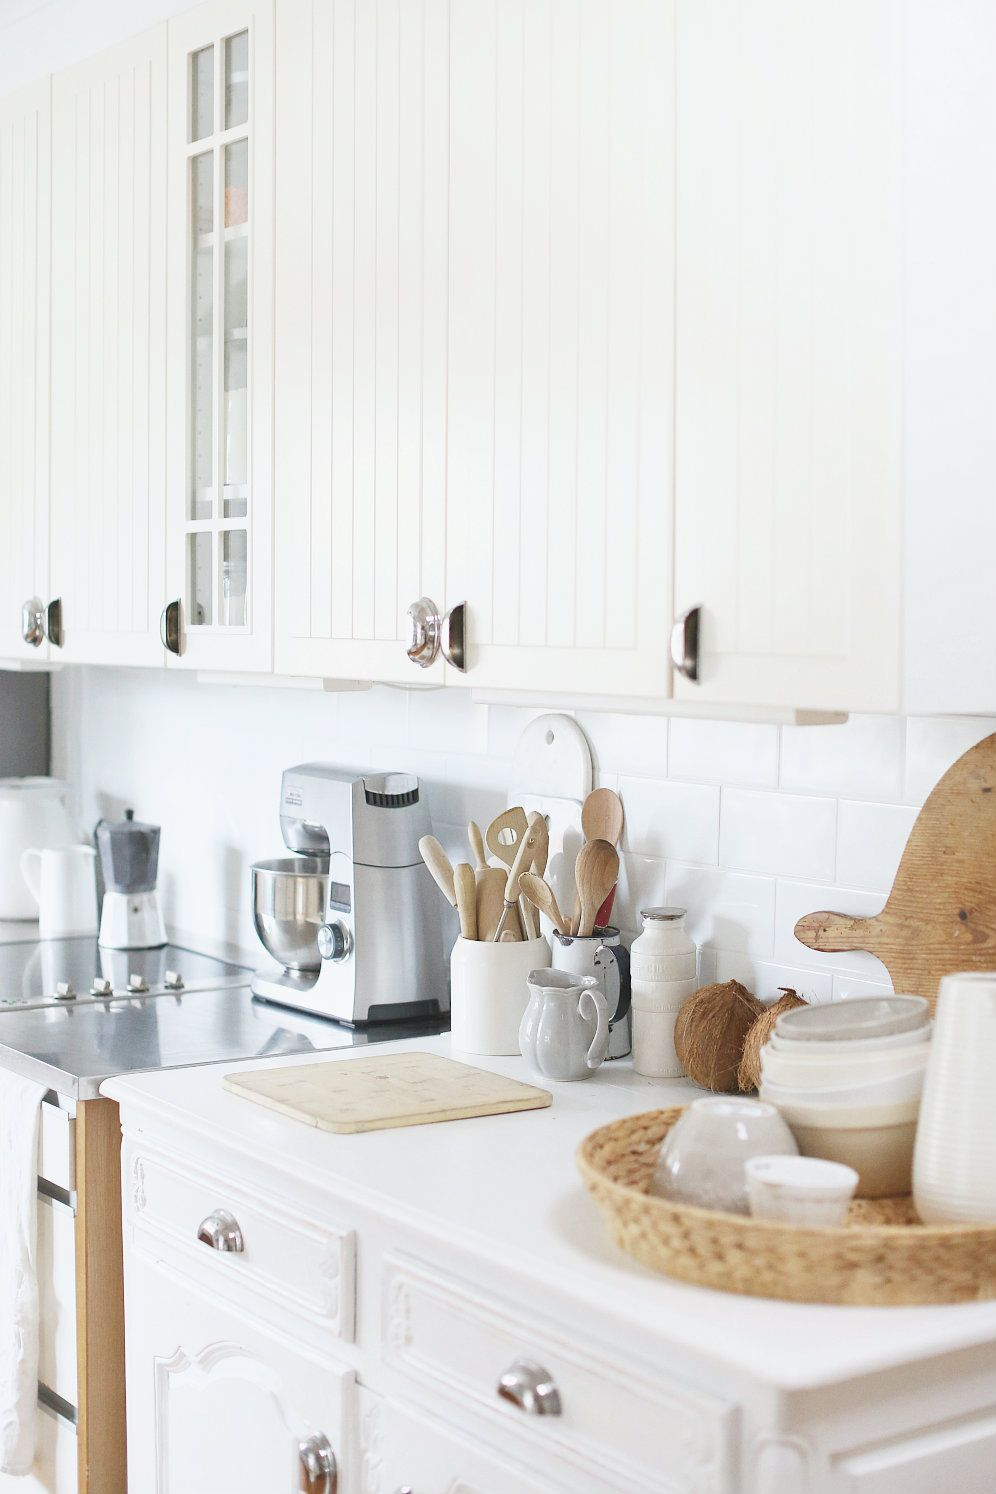 white kitchen subway tiles beach cottage style | Stil, Küchen ...